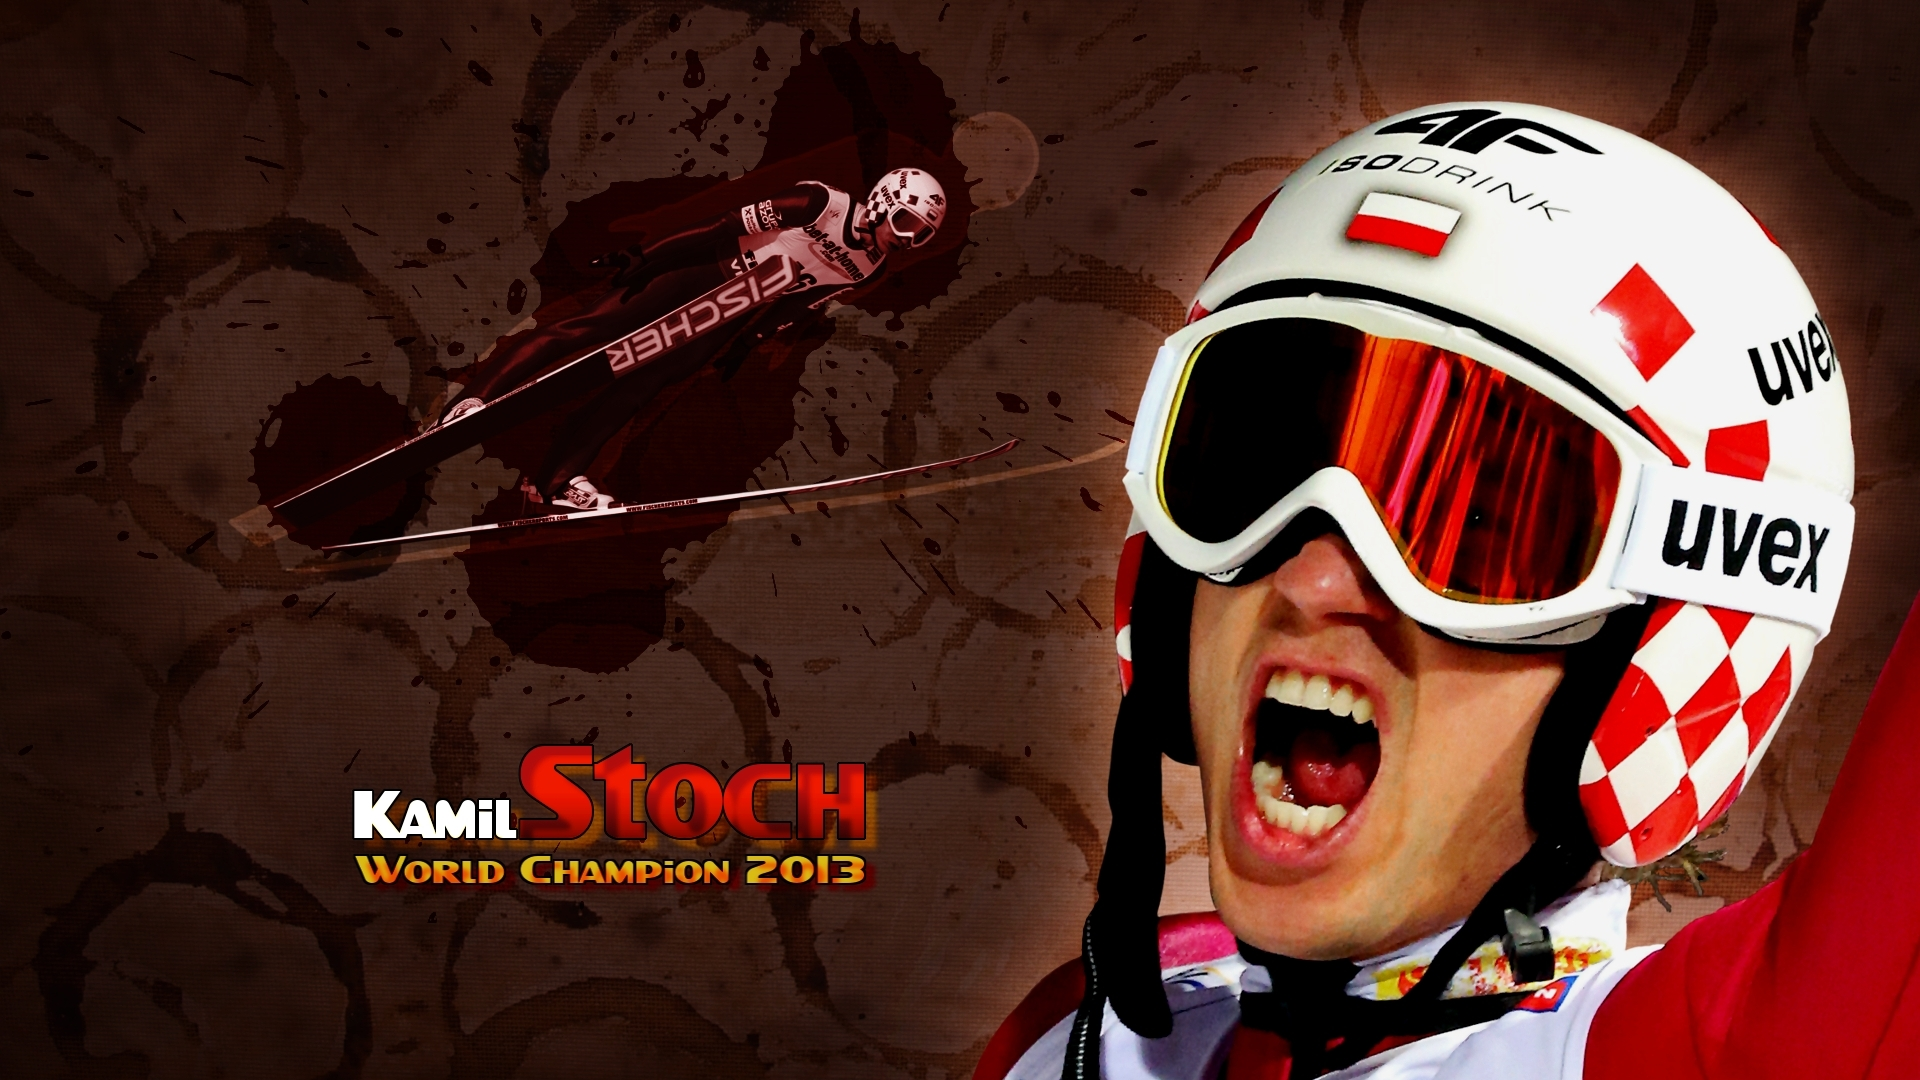 1920x1080 - Kamil Stoch Wallpapers 6